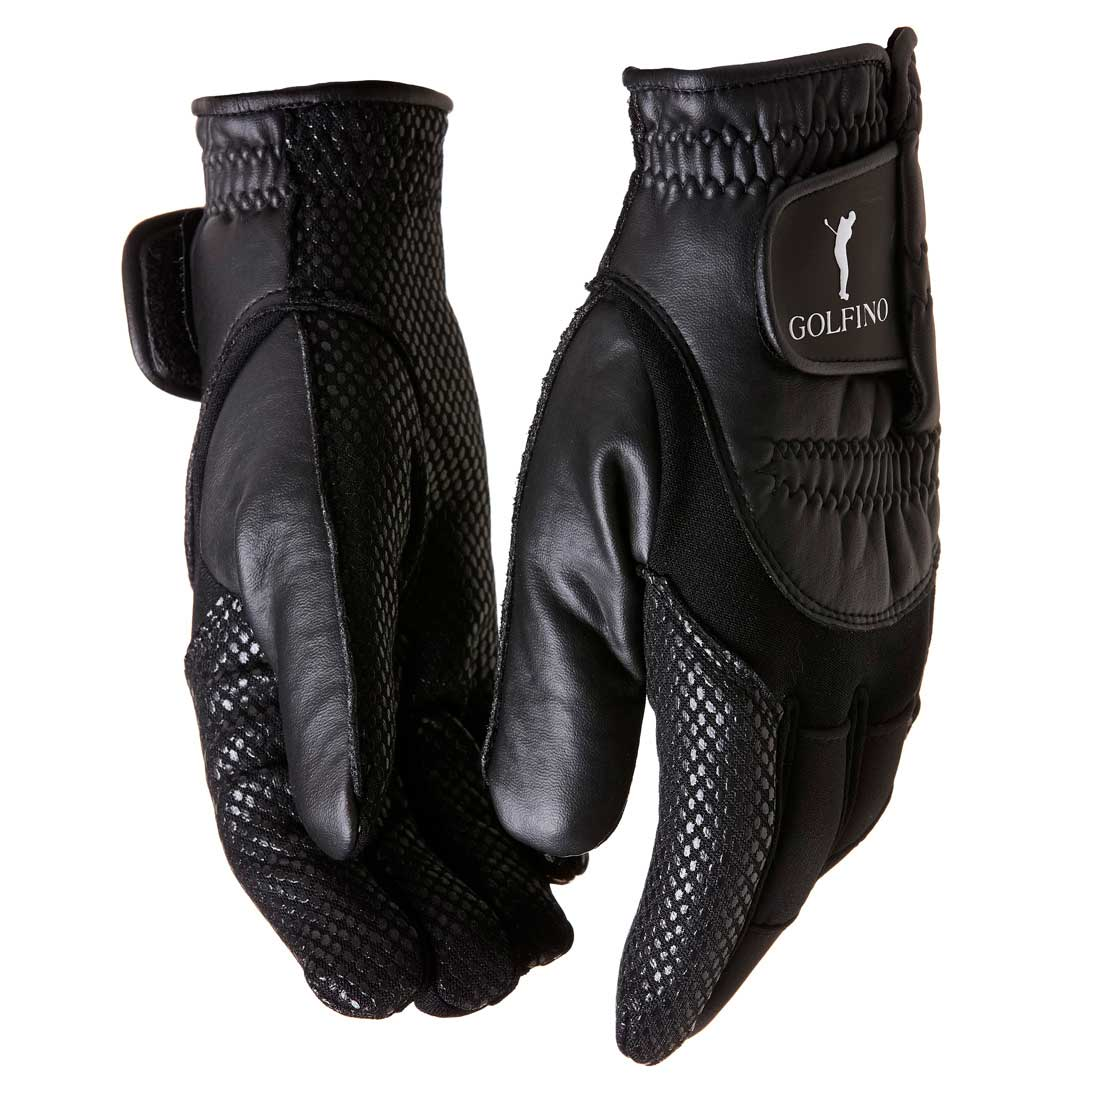 Men's winter golf gloves in leather look with velcro fastener